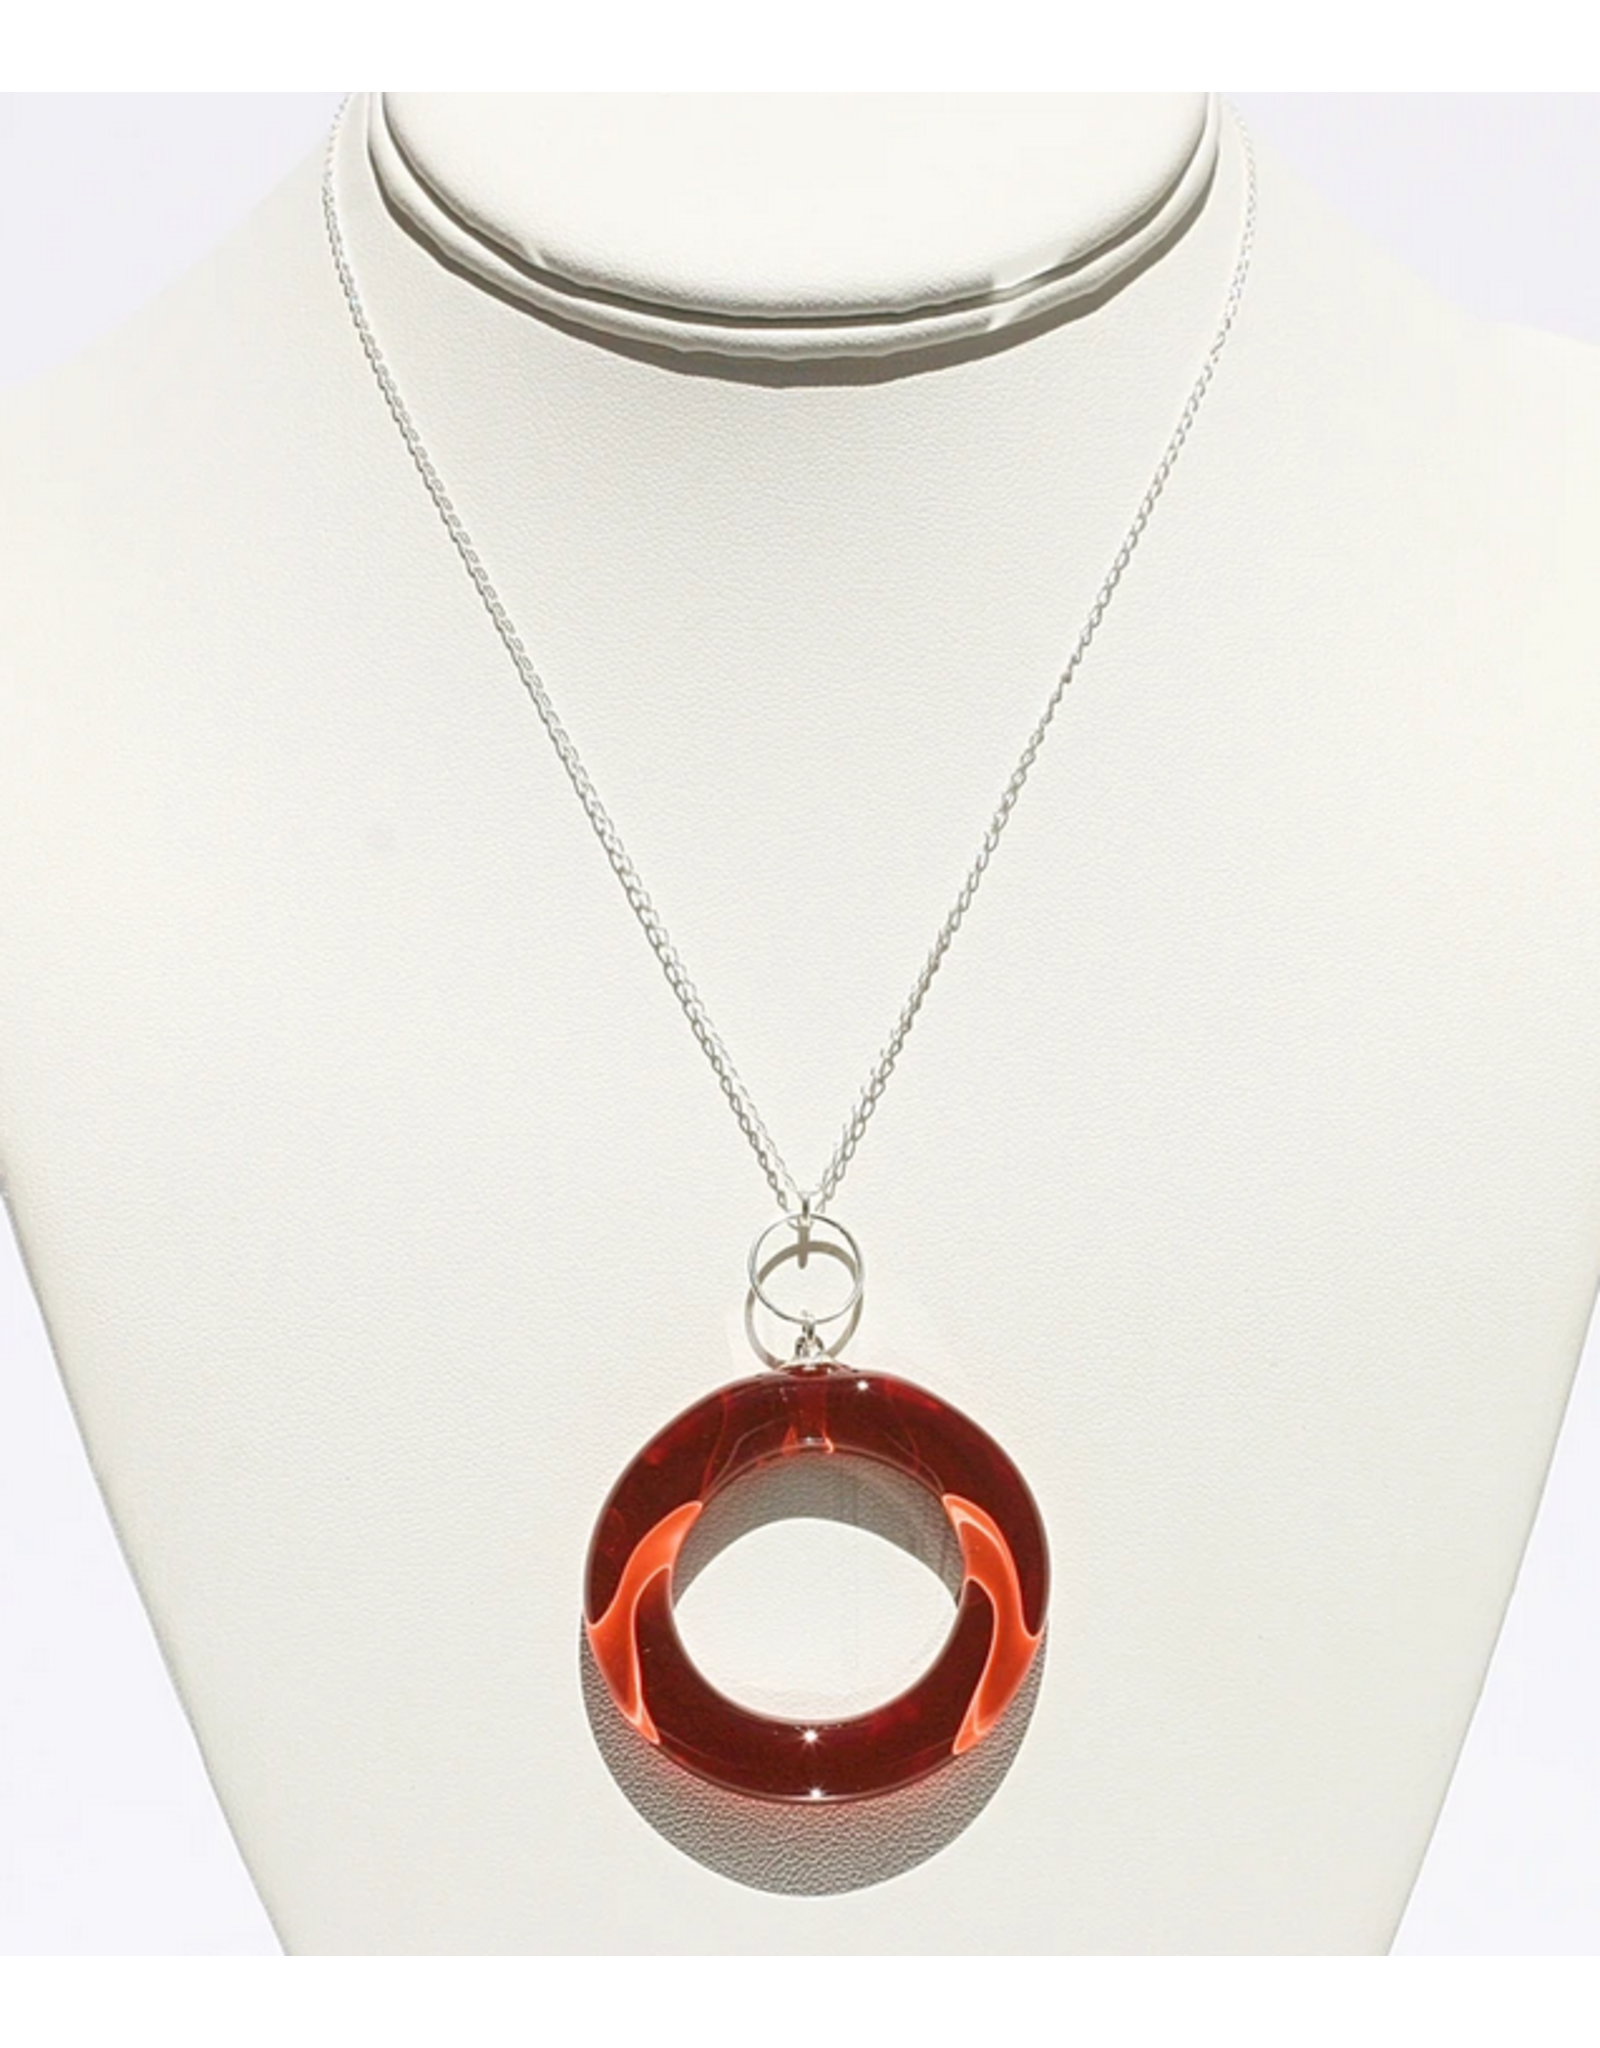 Perfecto Glass PENDANT NECKLACE (Large Hollow Circle)